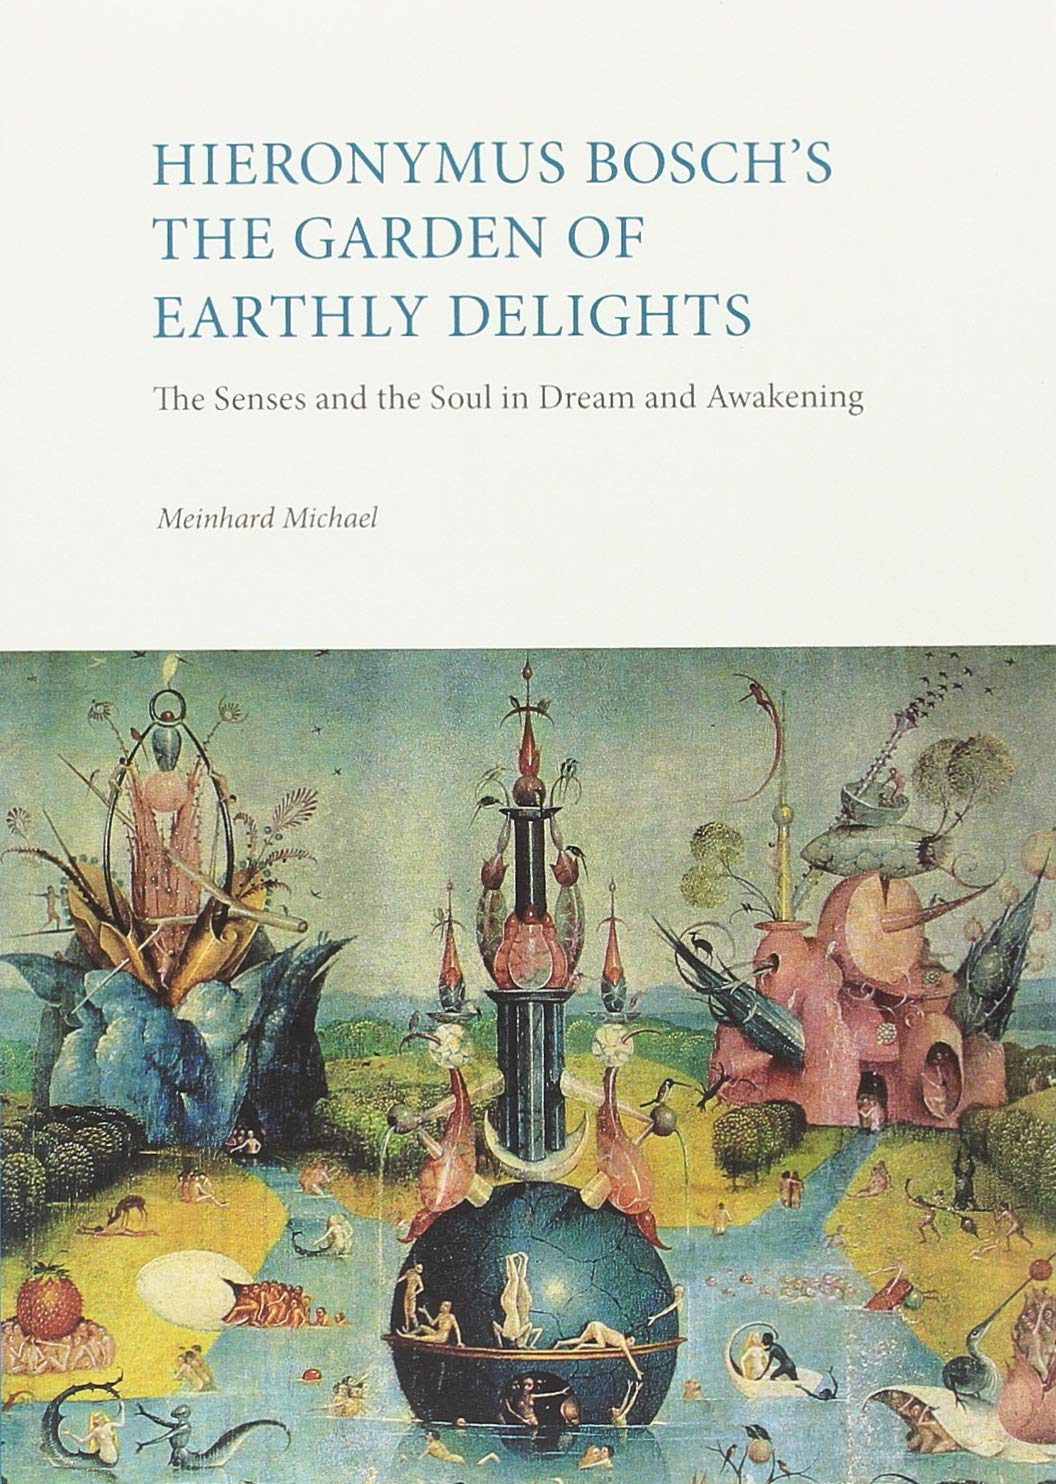 Hieronymus Bosch¿s The Garden Of Earthly Delights: The Senses and the Soul  in Dream and Awakening: Michael, Meinhard: 9783745869804: Amazon.com: Books